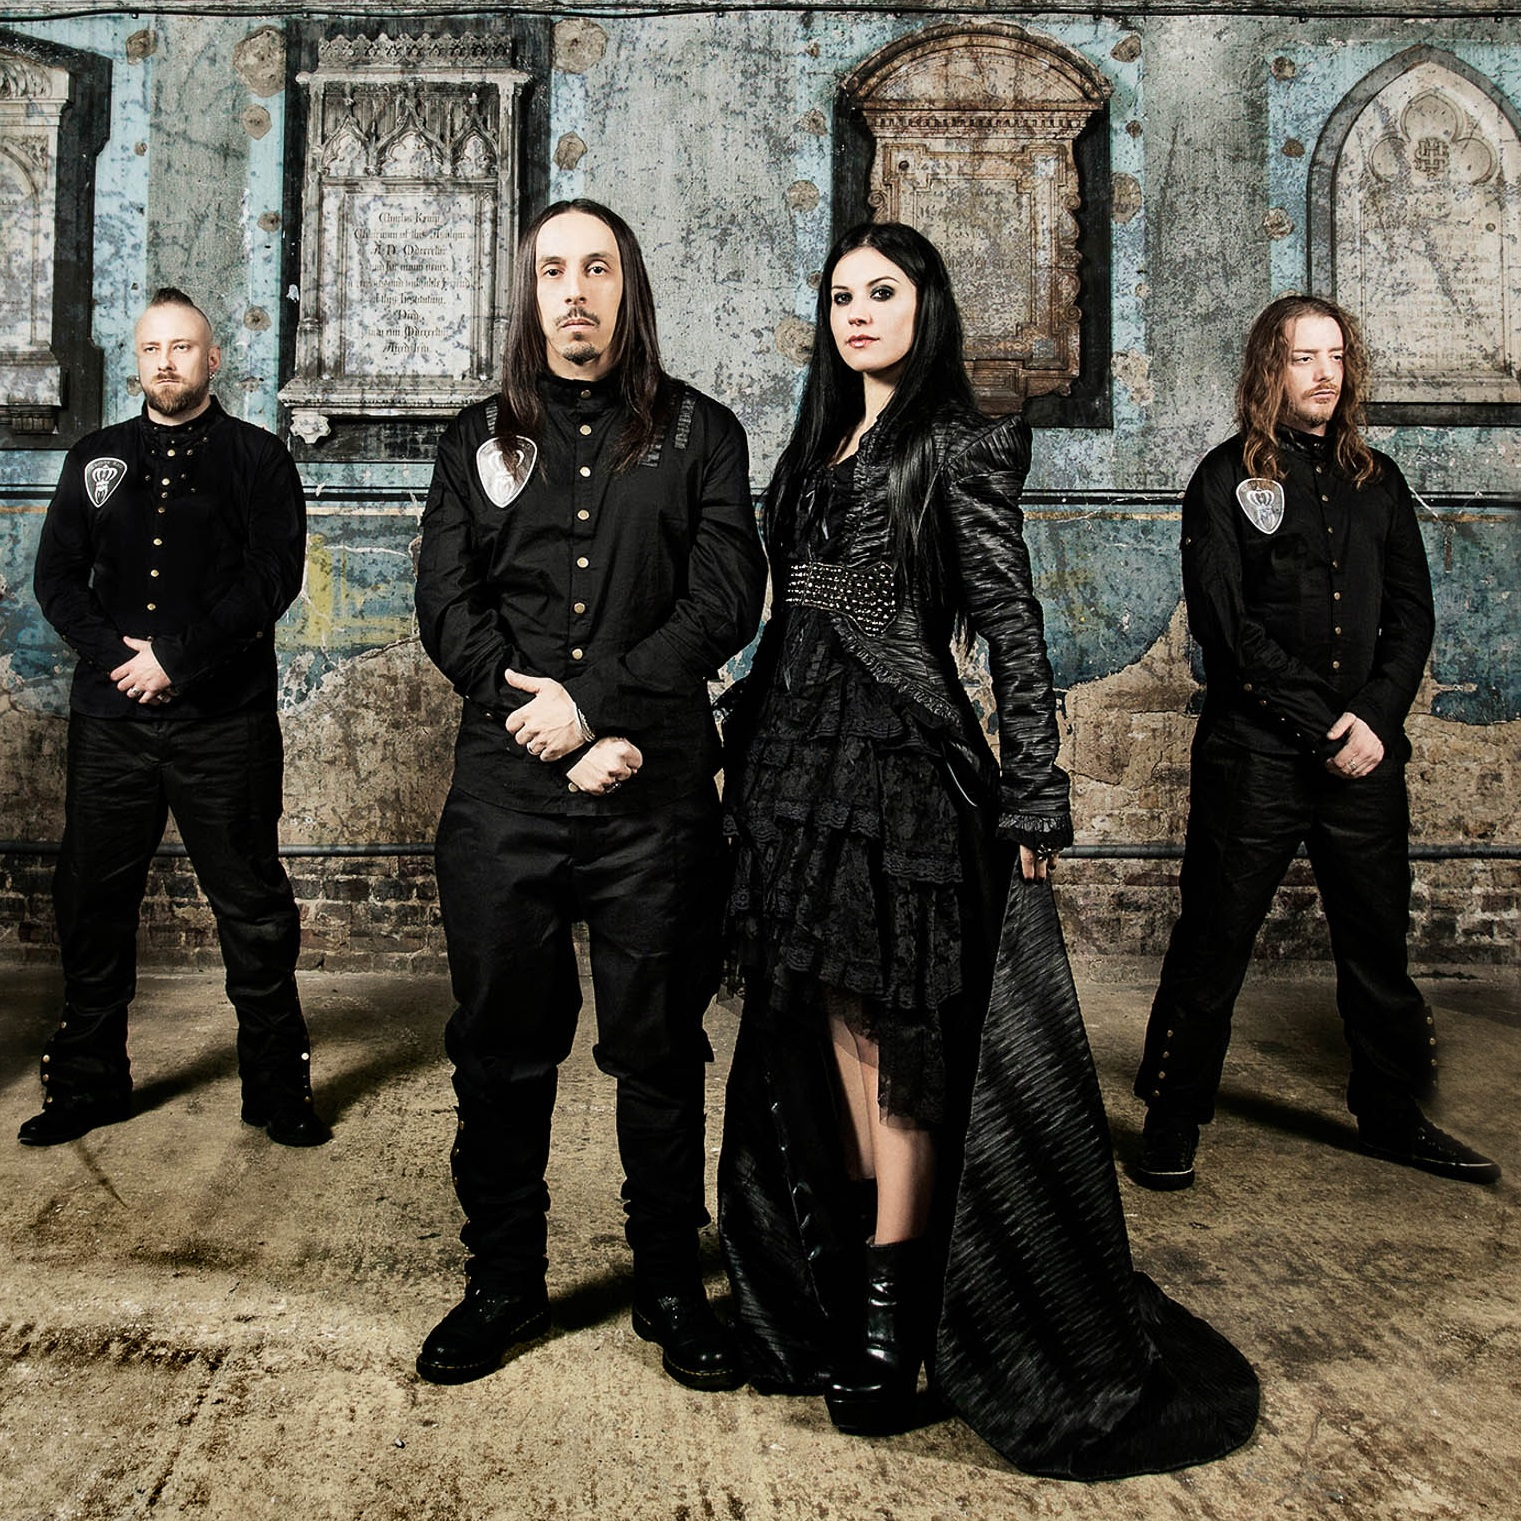 HQ Lacuna Coil Wallpapers | File 1045.92Kb